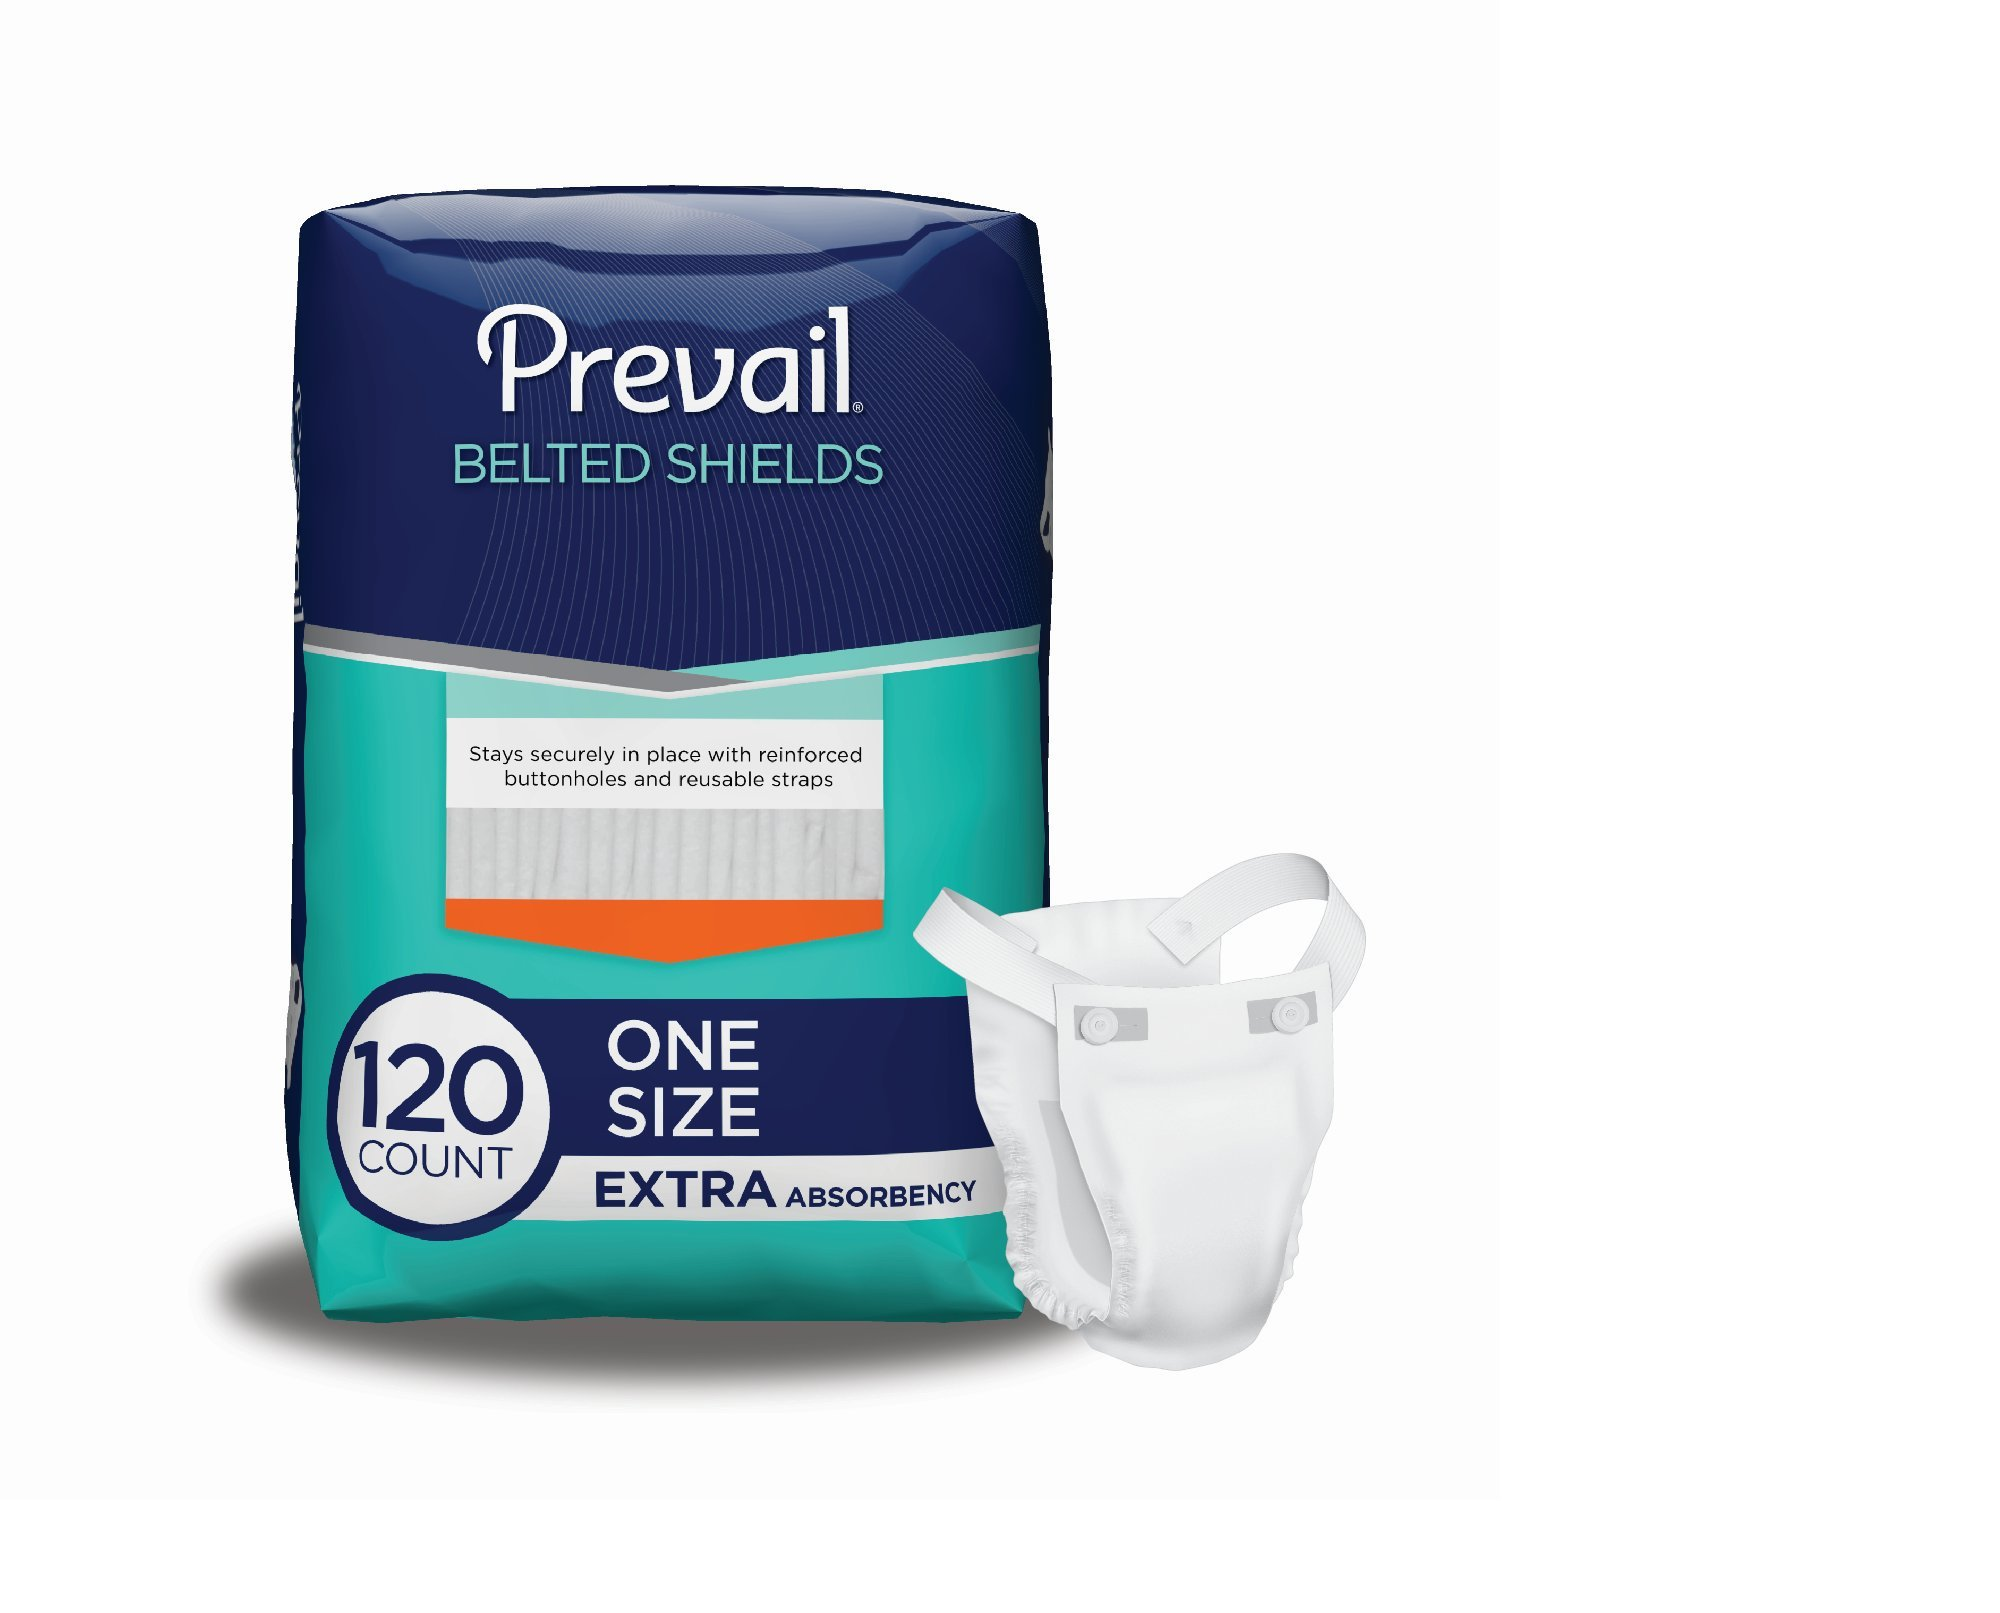 Prevail Extra Absorbency Incontinence Belted Shields, 120 Total Count